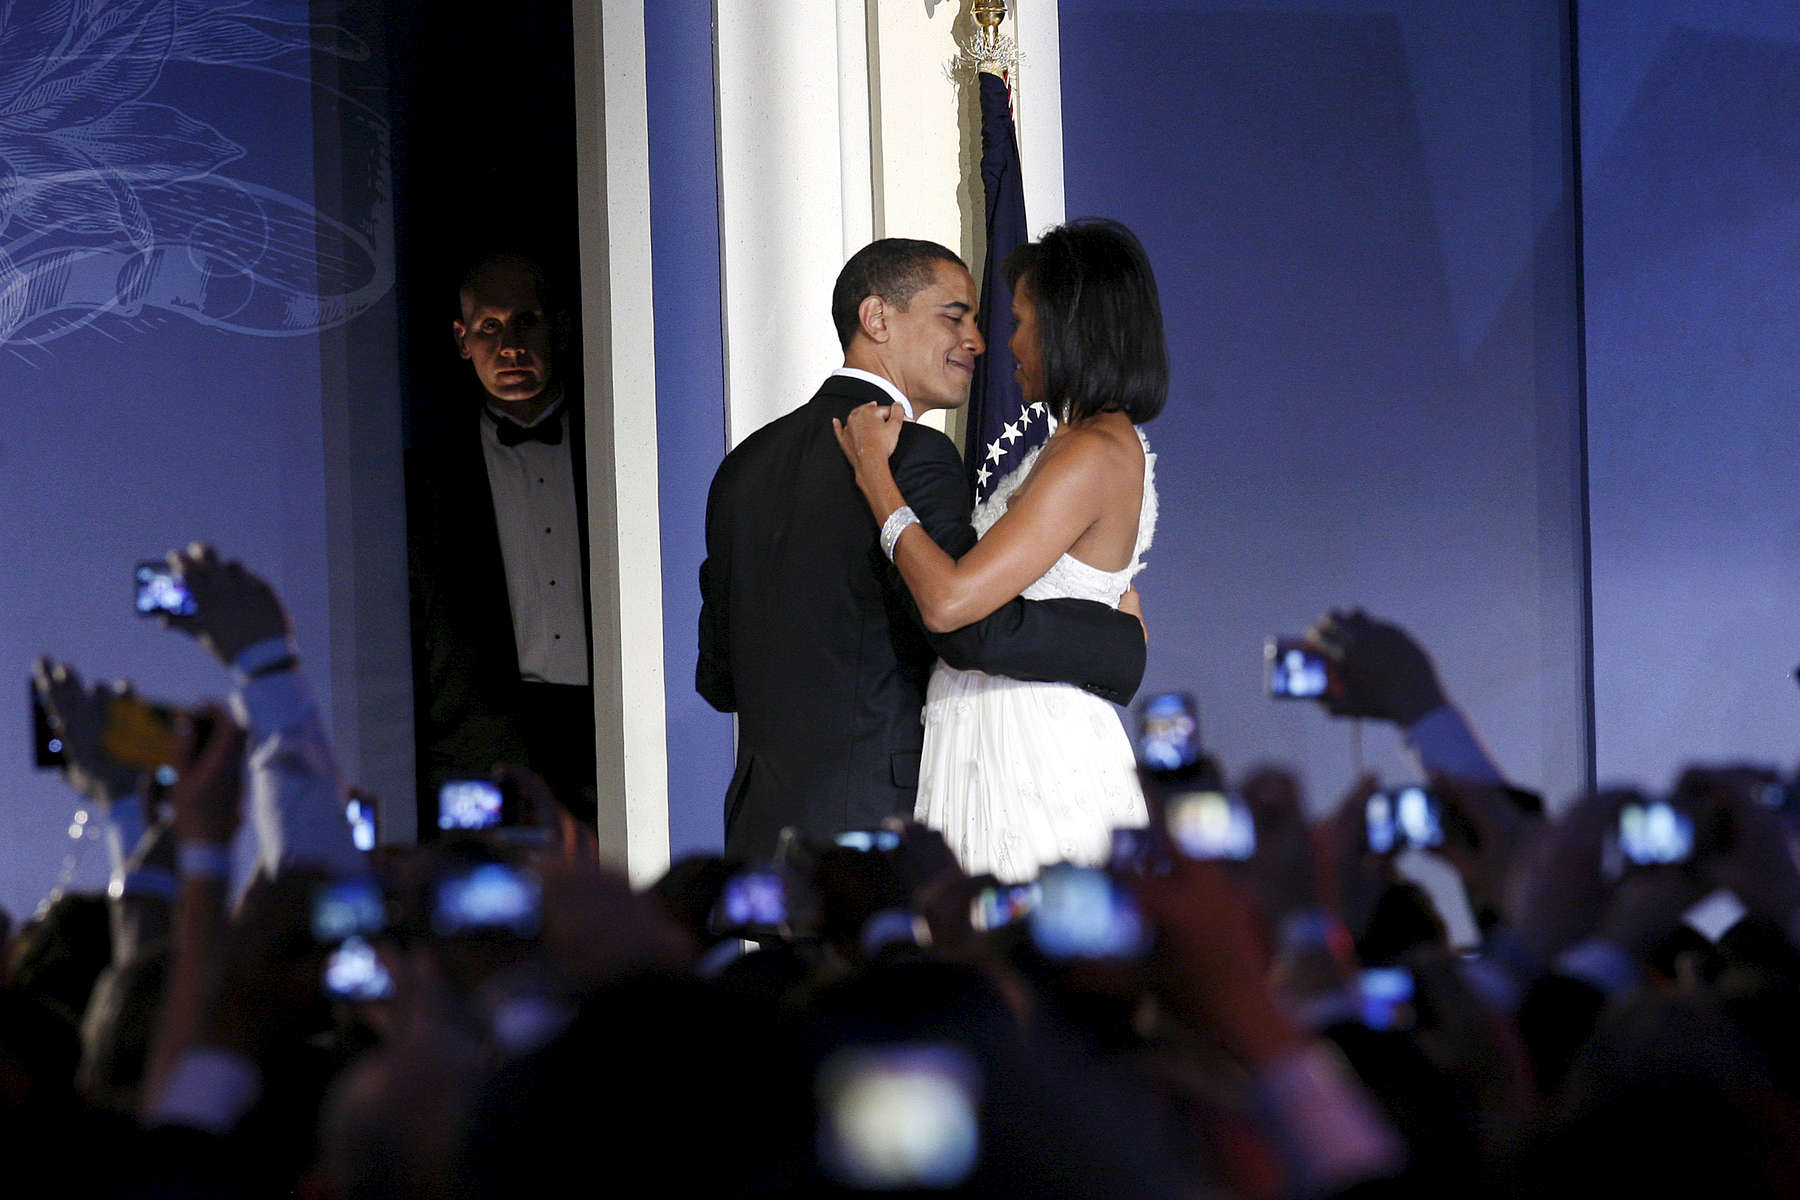 THE END OF THE ANONYMITYPresident Barack Obama and his wife Michelle open the Youth Ball, one of the inauguration balls, in  Washington, DC, January 20, 2009. They are surrounded by cameras, while a Secret Service agent watches in the shadow.